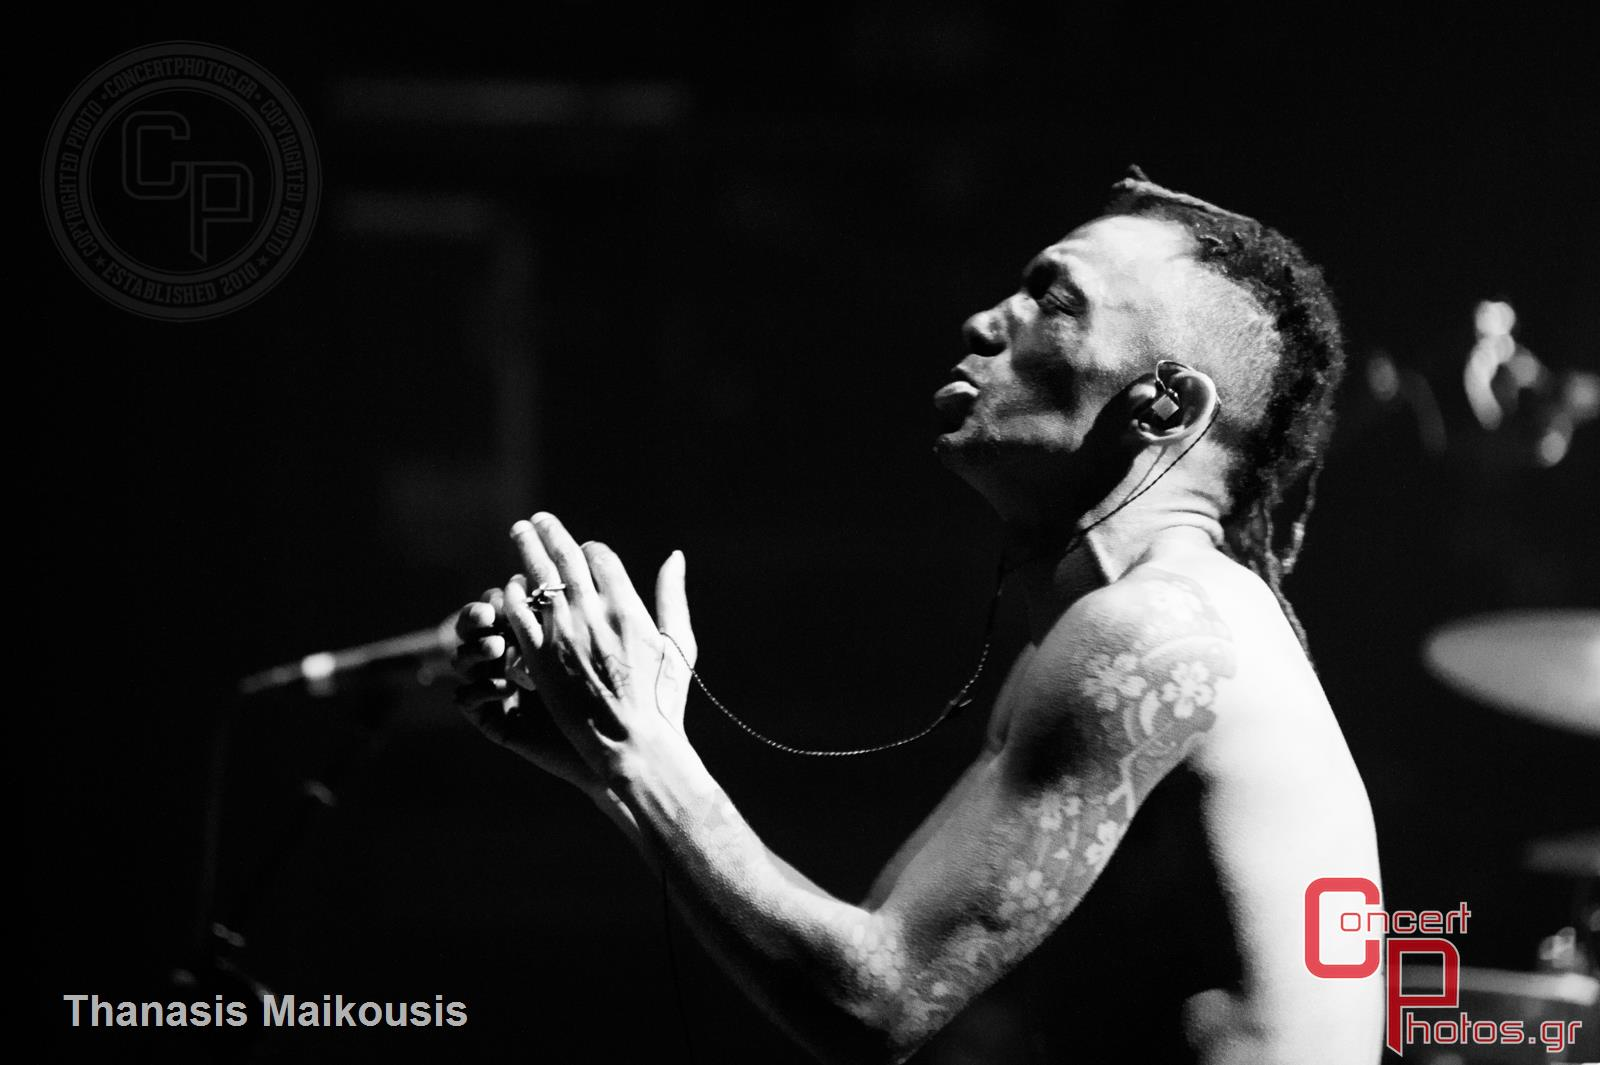 Tricky - Spectralfire-Tricky - Spectralfire photographer: Thanasis Maikousis - concertphotos_-3854